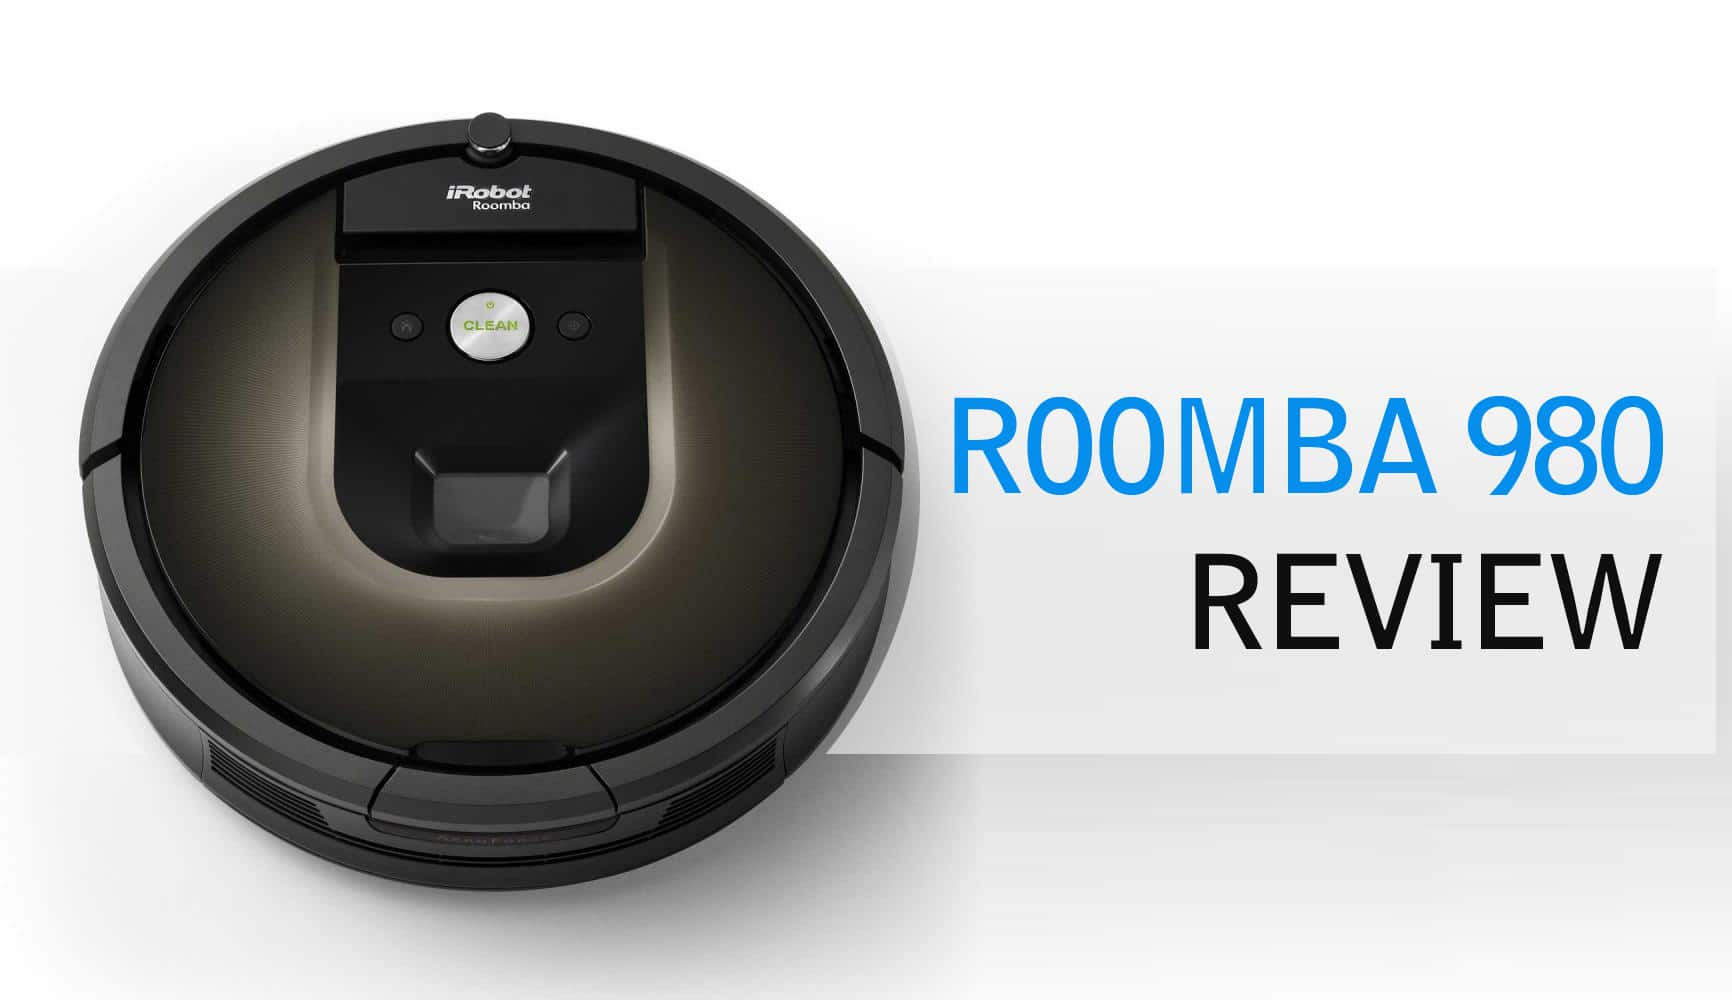 Make Your Life Easier With Robot Vacuums – The Roomba 980 Review